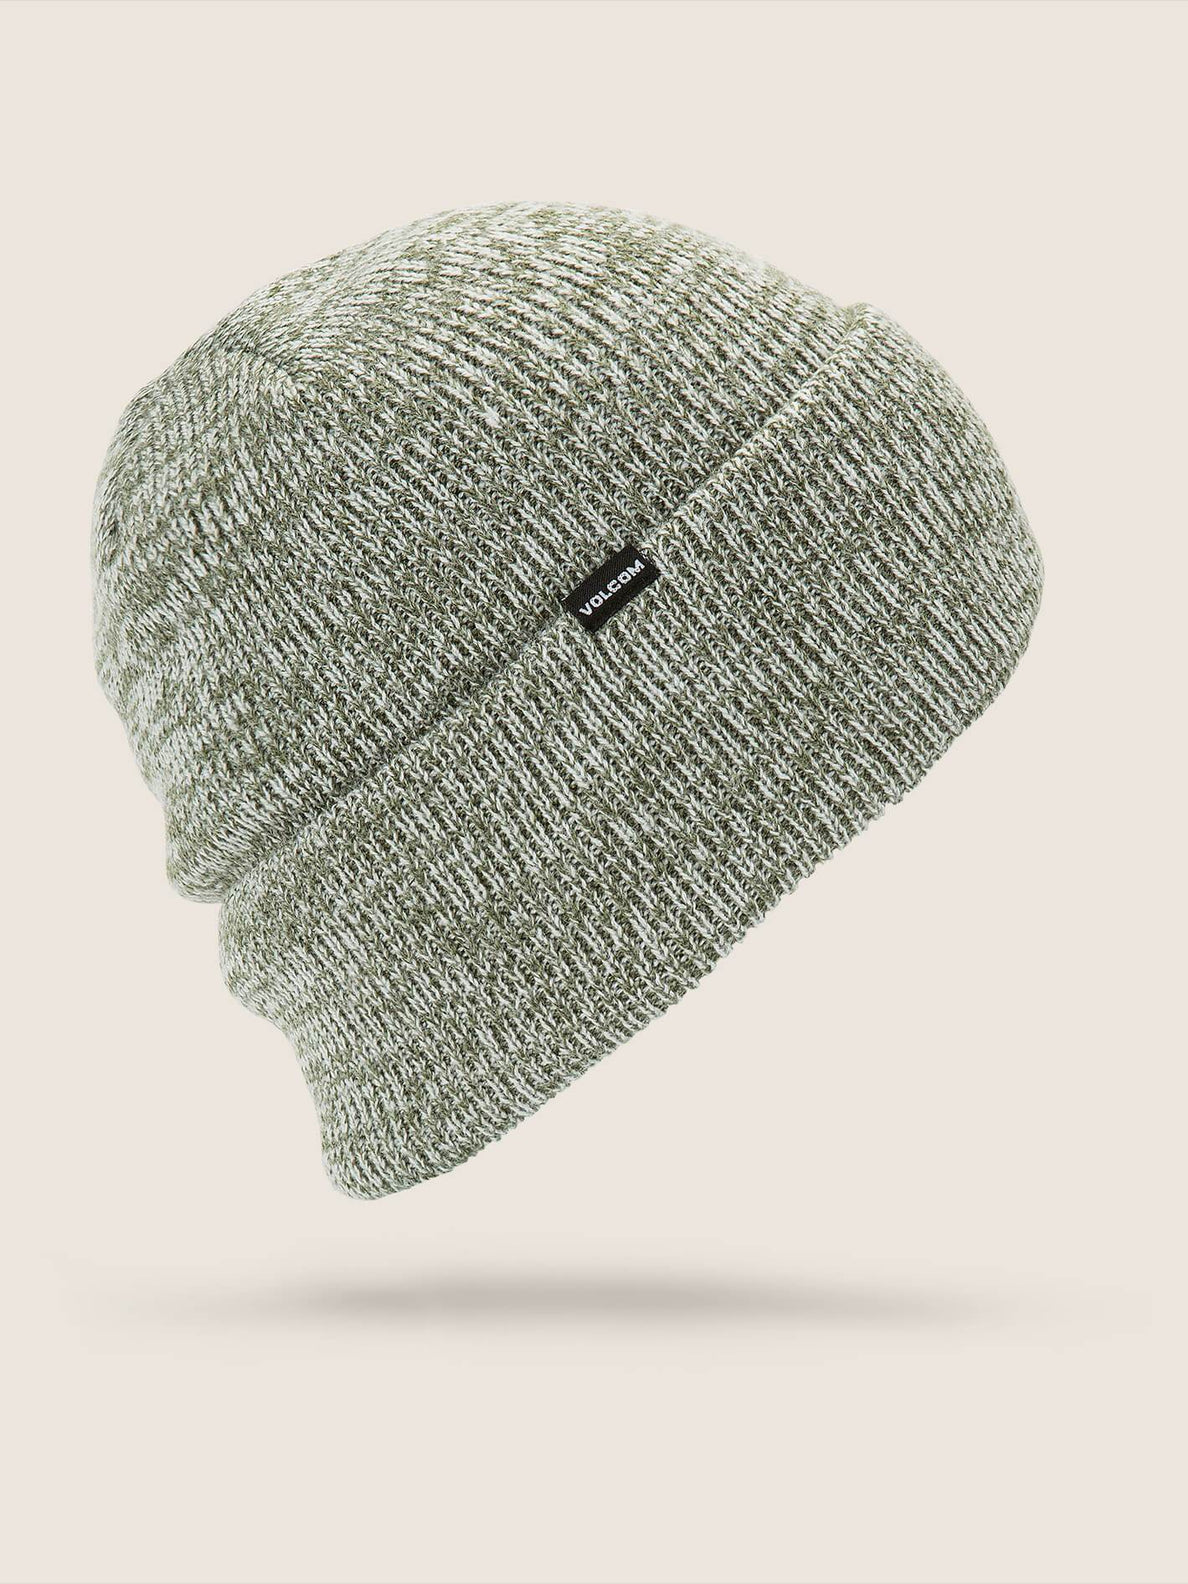 Heathers Beanie - Black Green